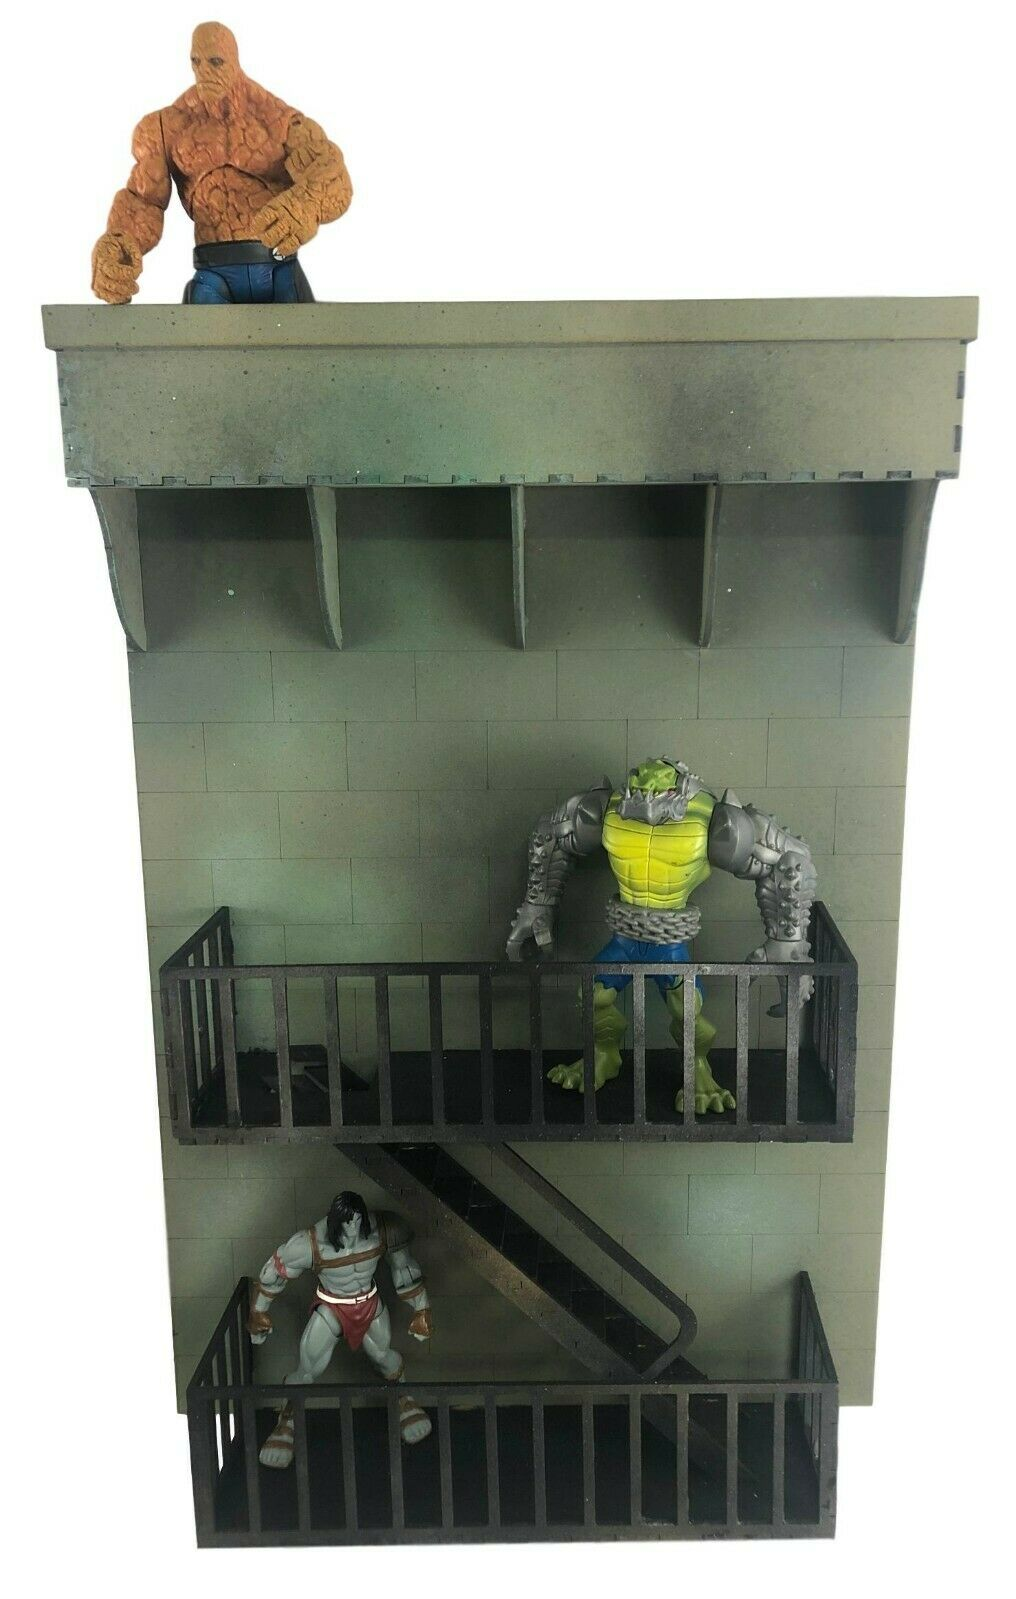 Fire Escape Building Wall 5  6  7  Action Figure Diorama Kit Background Scenery